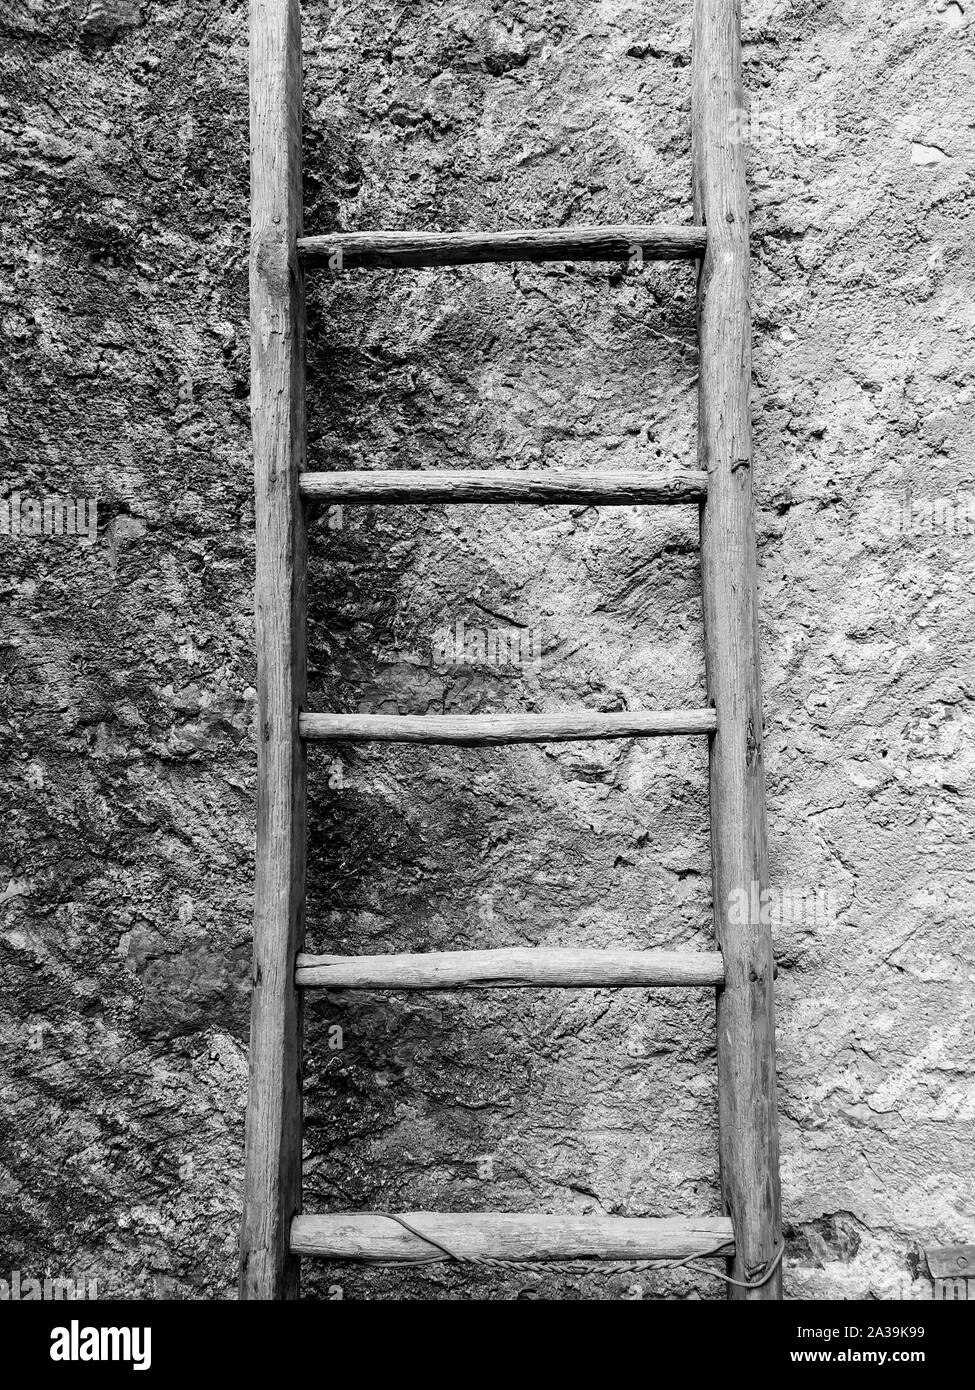 Ancient wood stepladder in black and white Stock Photo